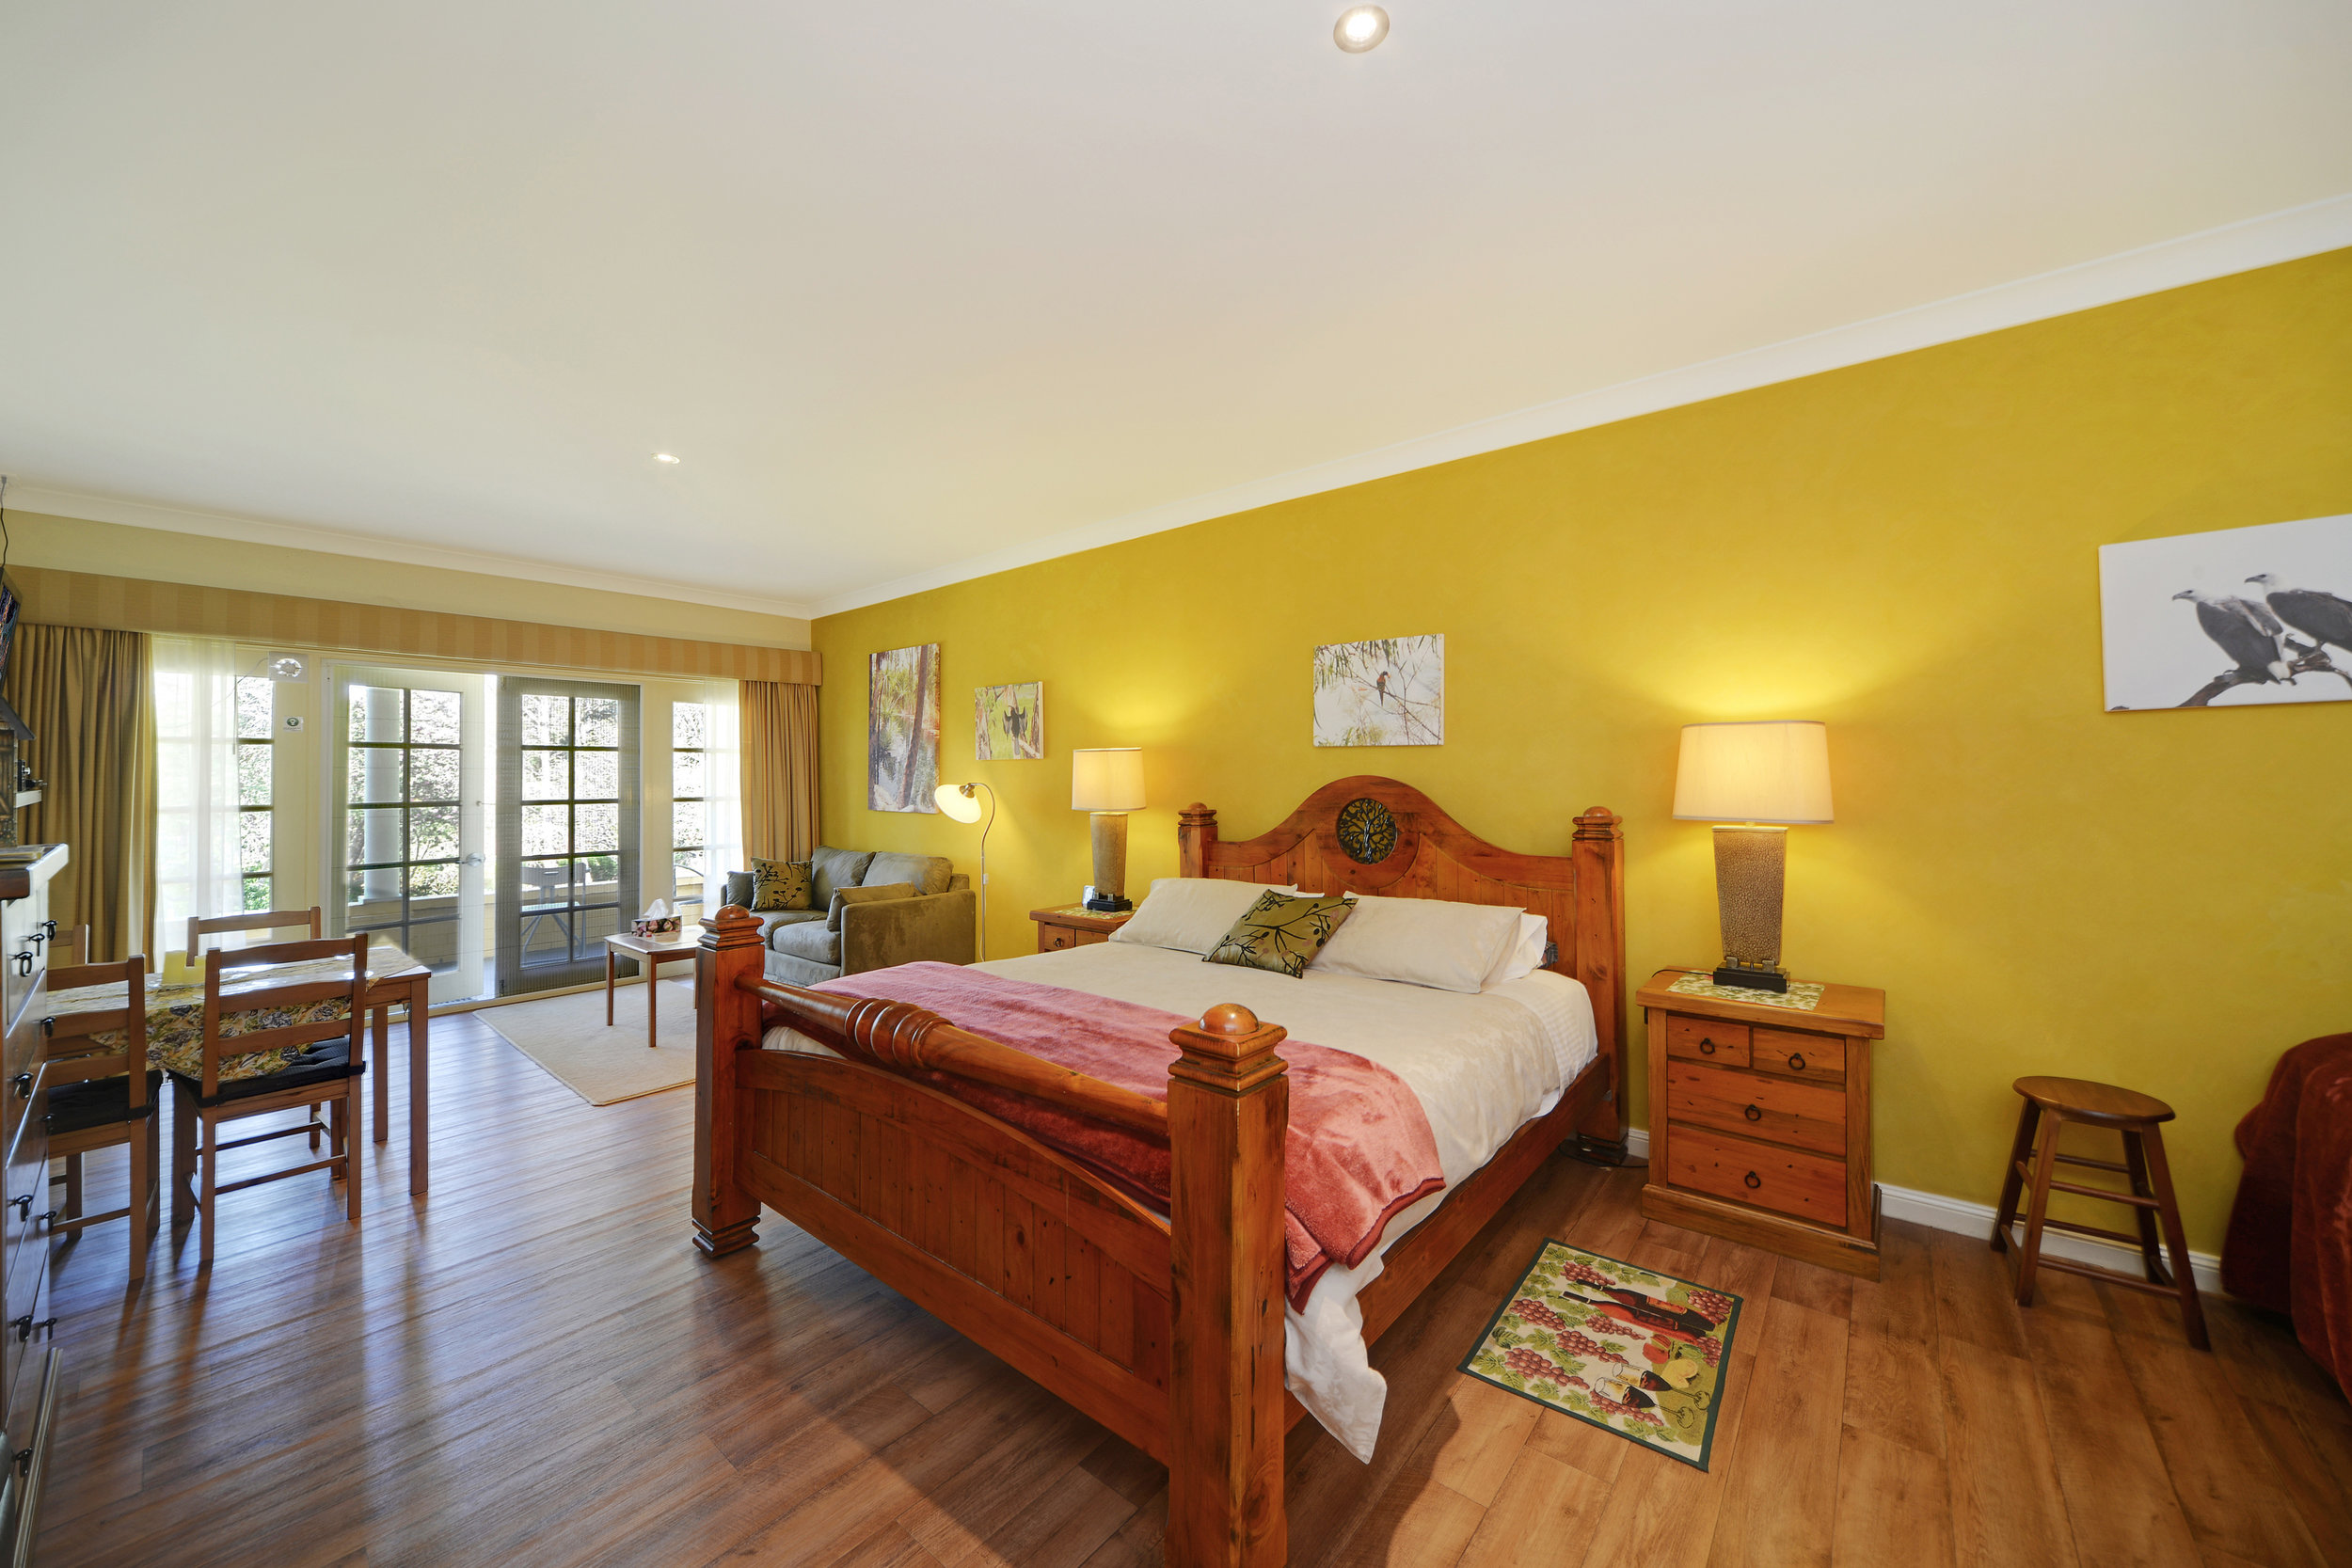 1 king bed | 1 king single bed & trundle | 1 sofa bed | max 5 people